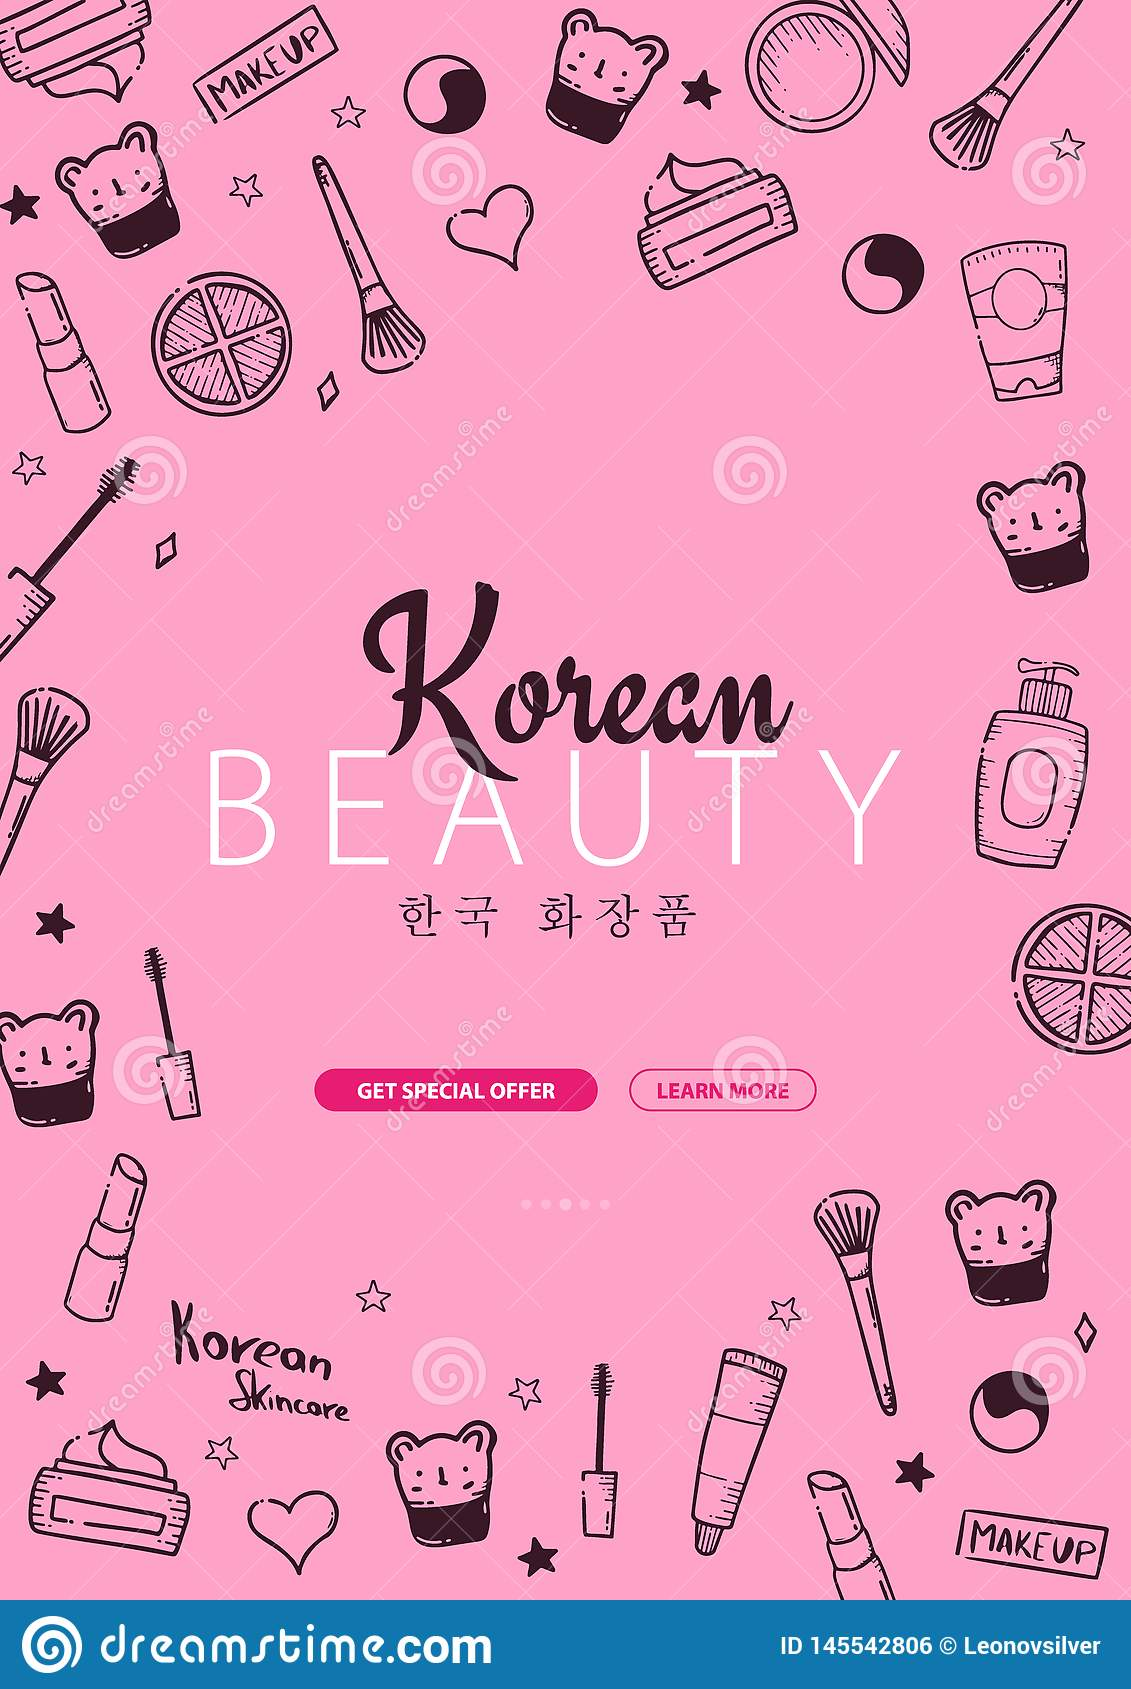 Korean Cosmetics K Beauty Banner With Hand Draw Doodle Background Skincare And Makeup Translation Korean Cosmetics Stock Vector Illustration Of Beauty Line 145542806